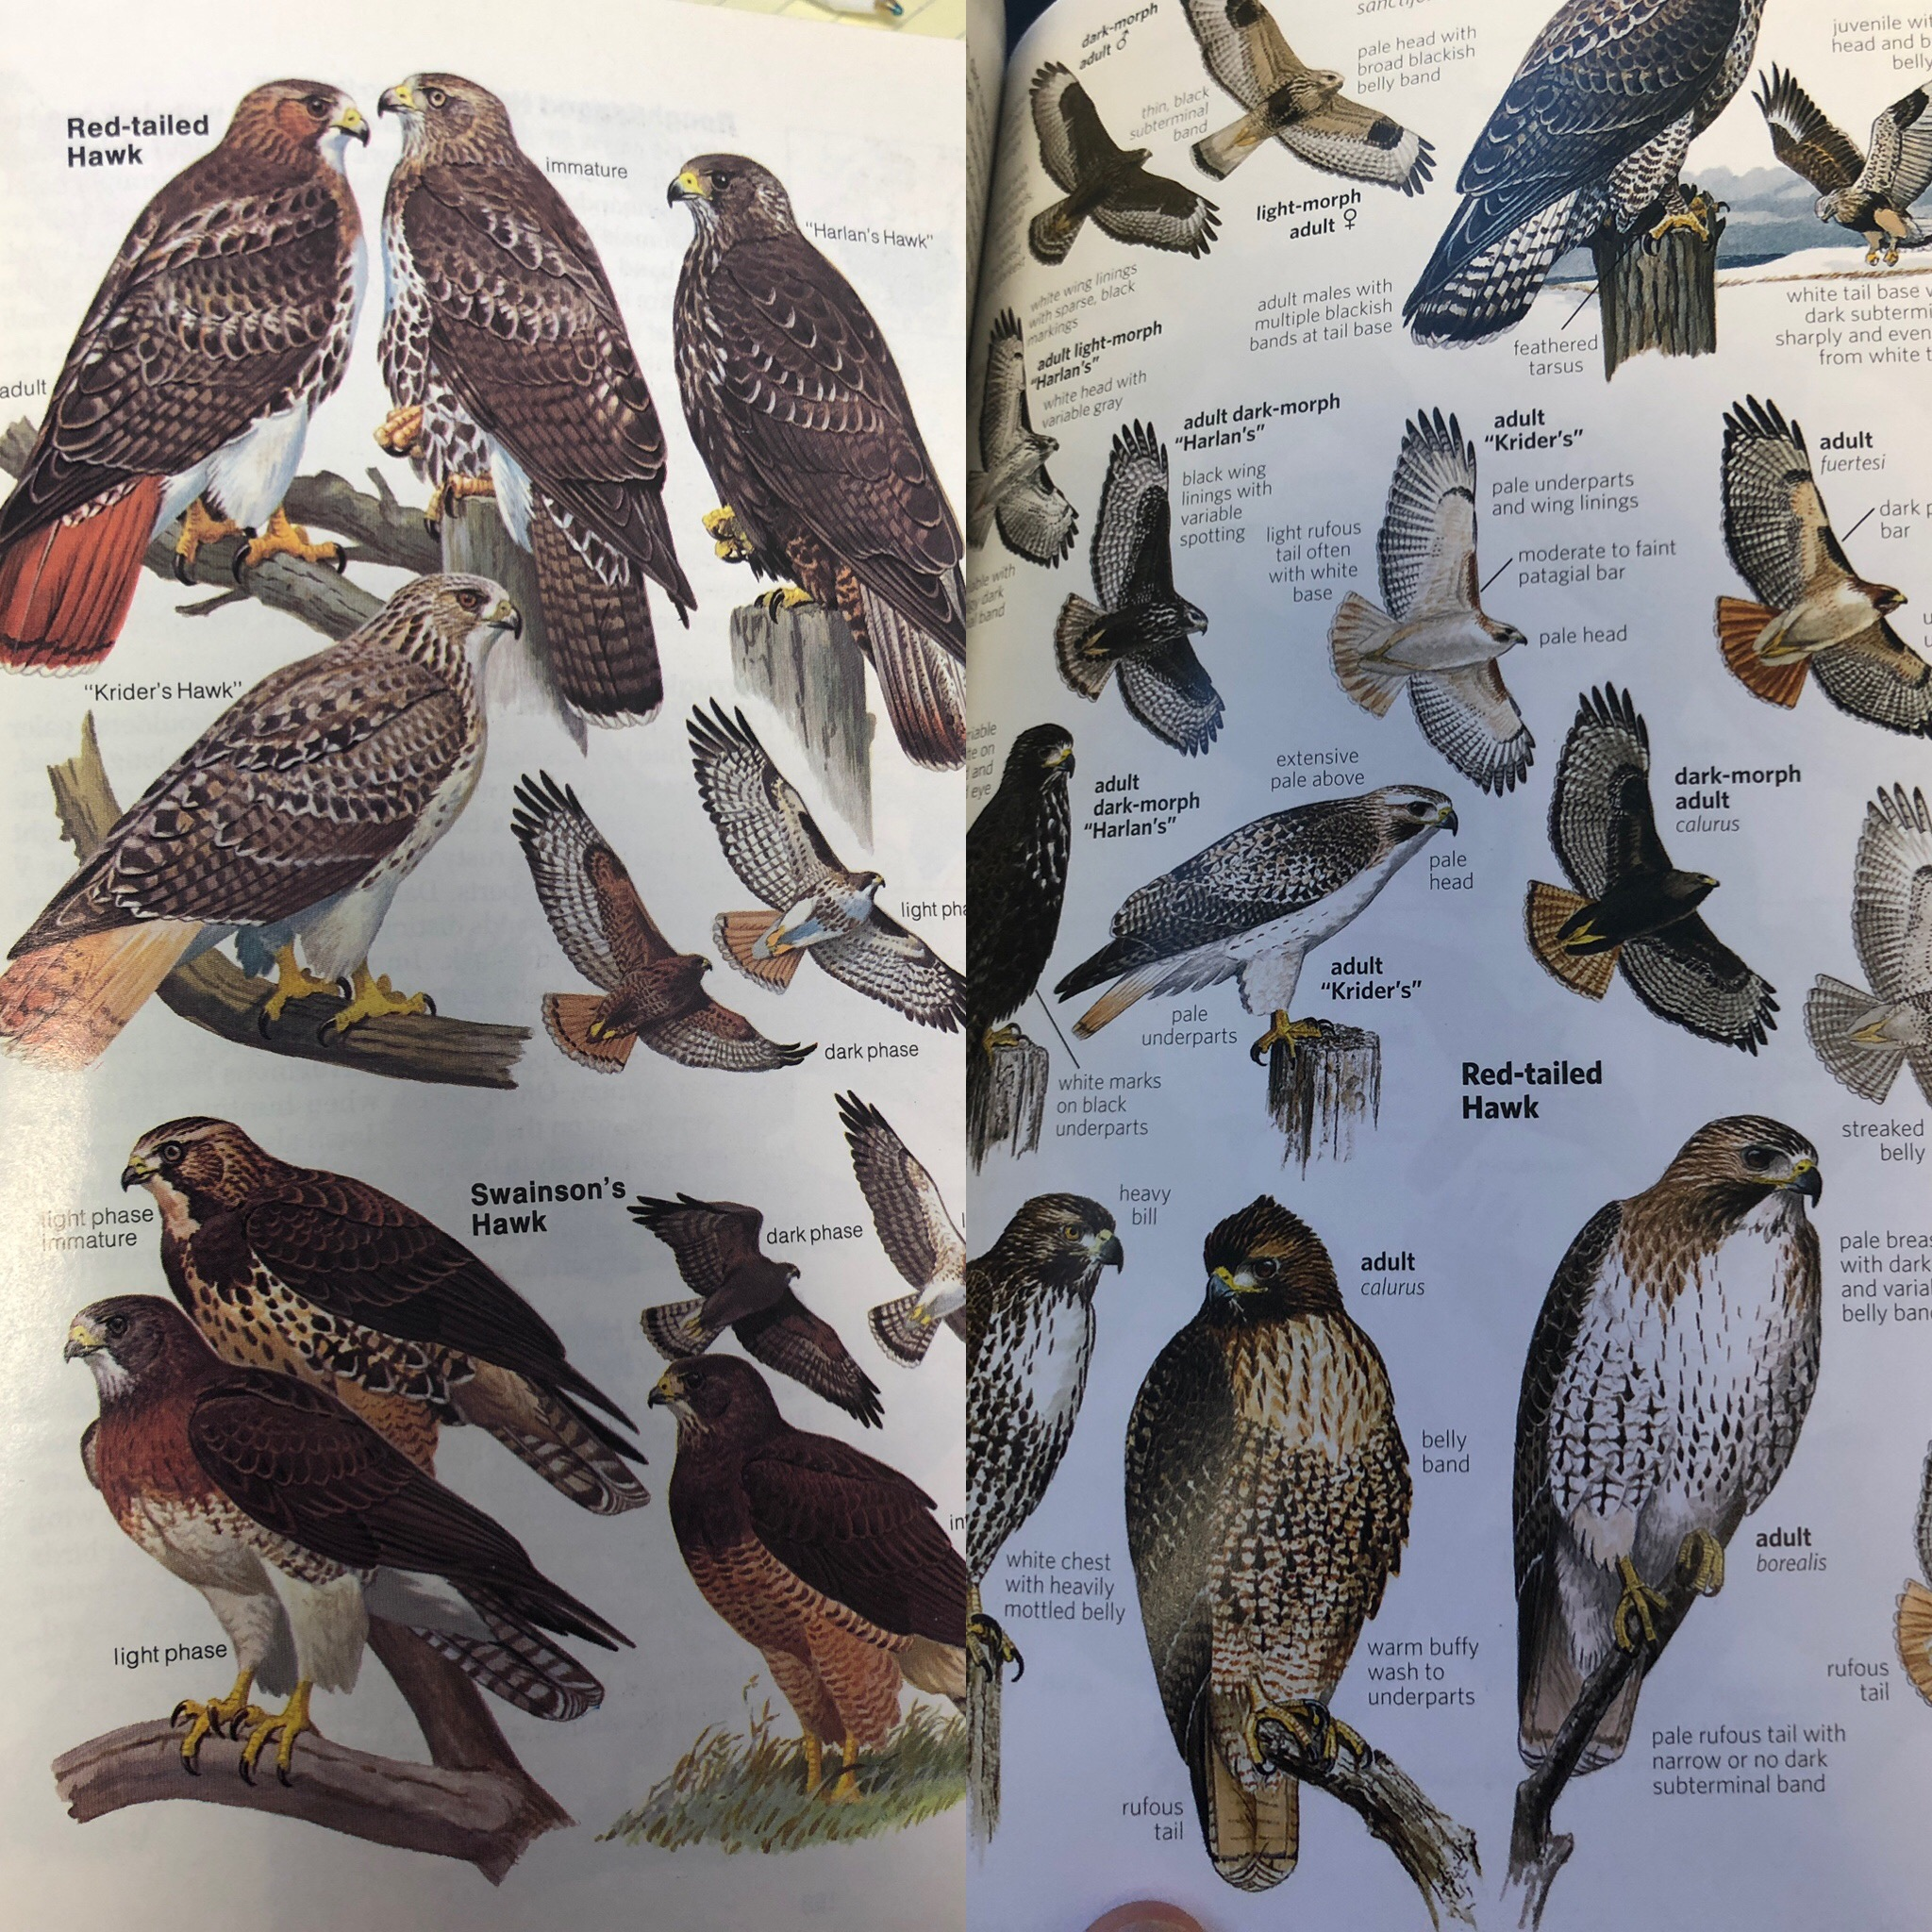 On the left we have the red-tailed hawk/Swainson's hawk page of the second edition. On the right is the new and improved red-tailed hawk/rough-legged hawk page.